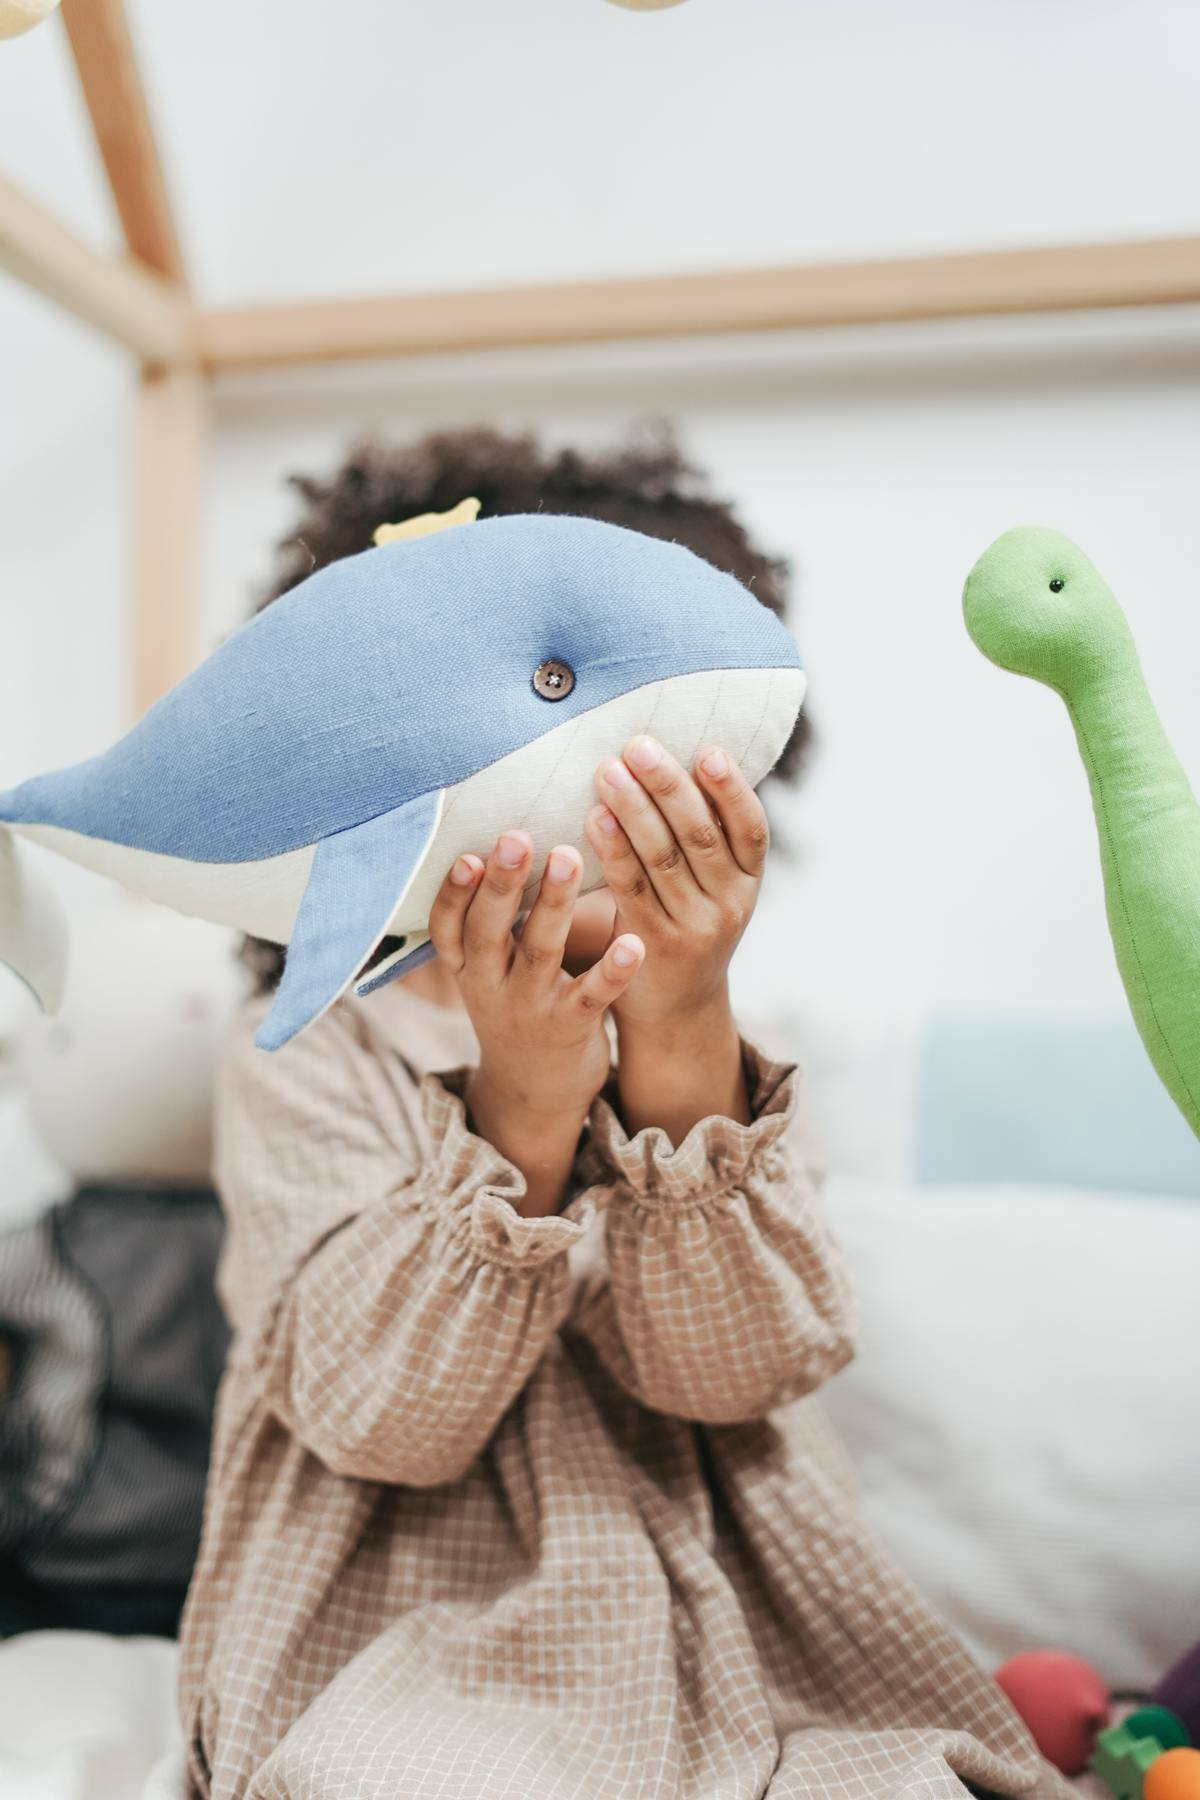 Small child holds stuffed whale toy in front of face